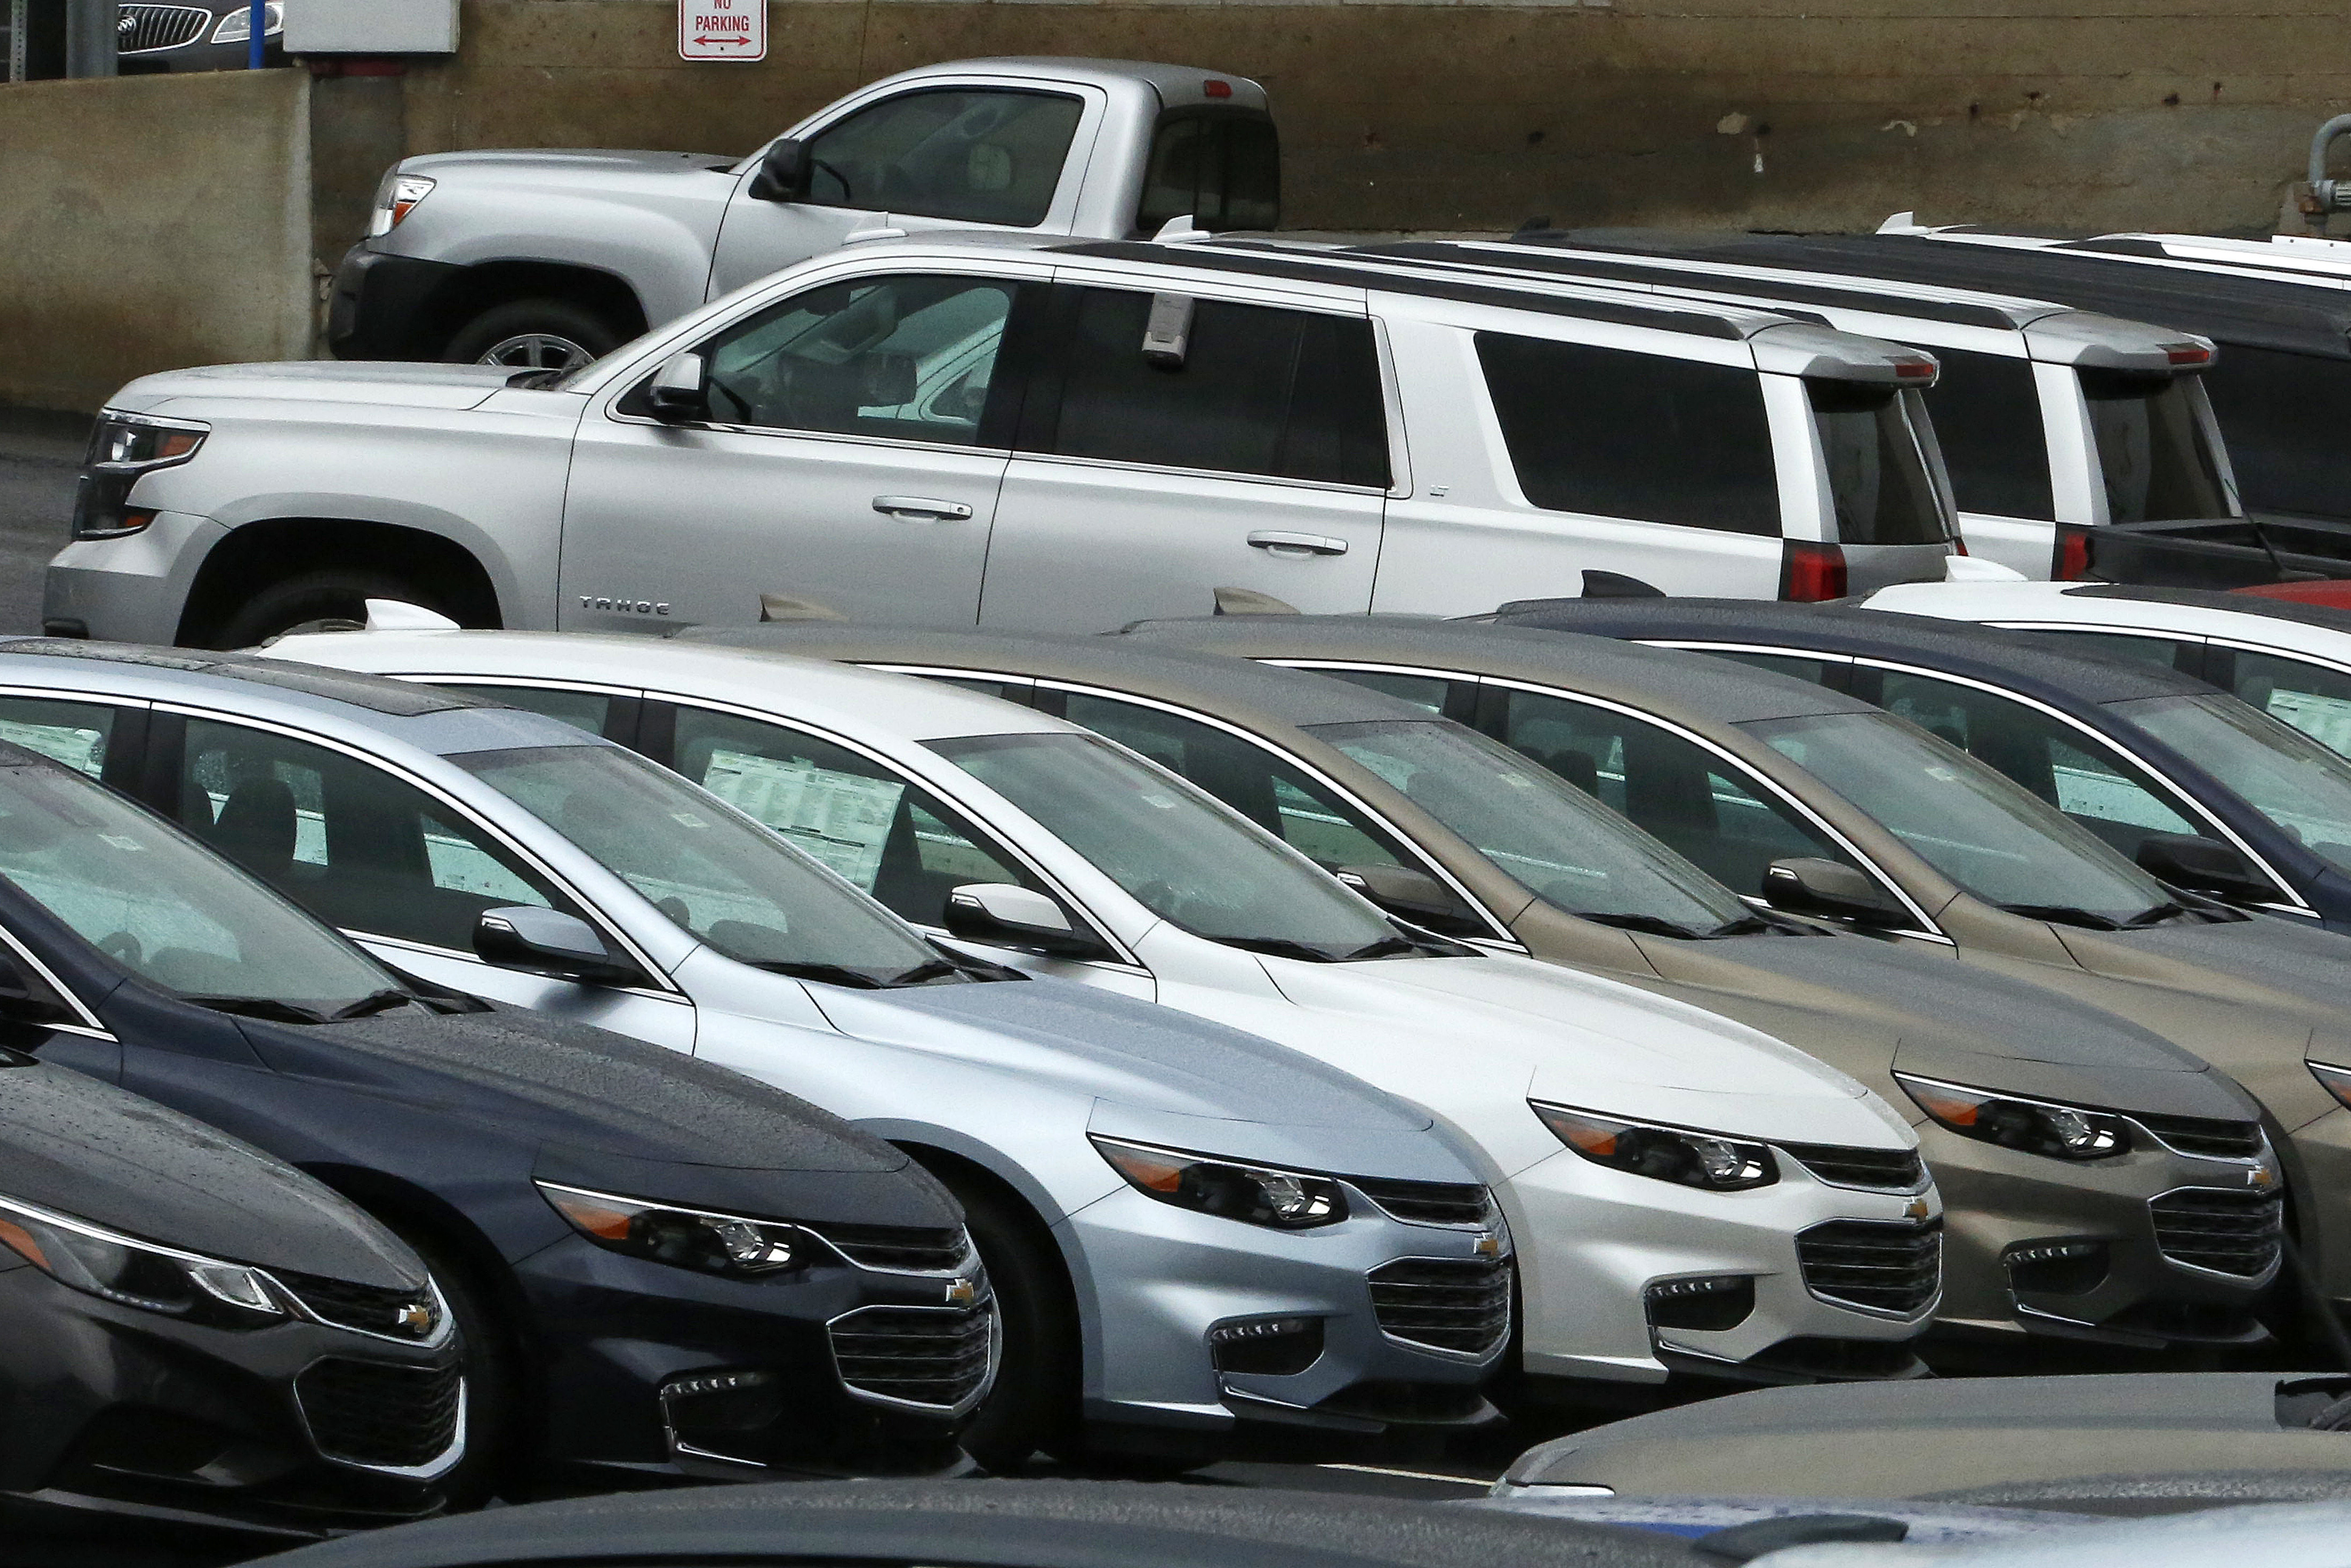 Ford GM report strong Sept U S sales Fiat Chrysler down The Blade